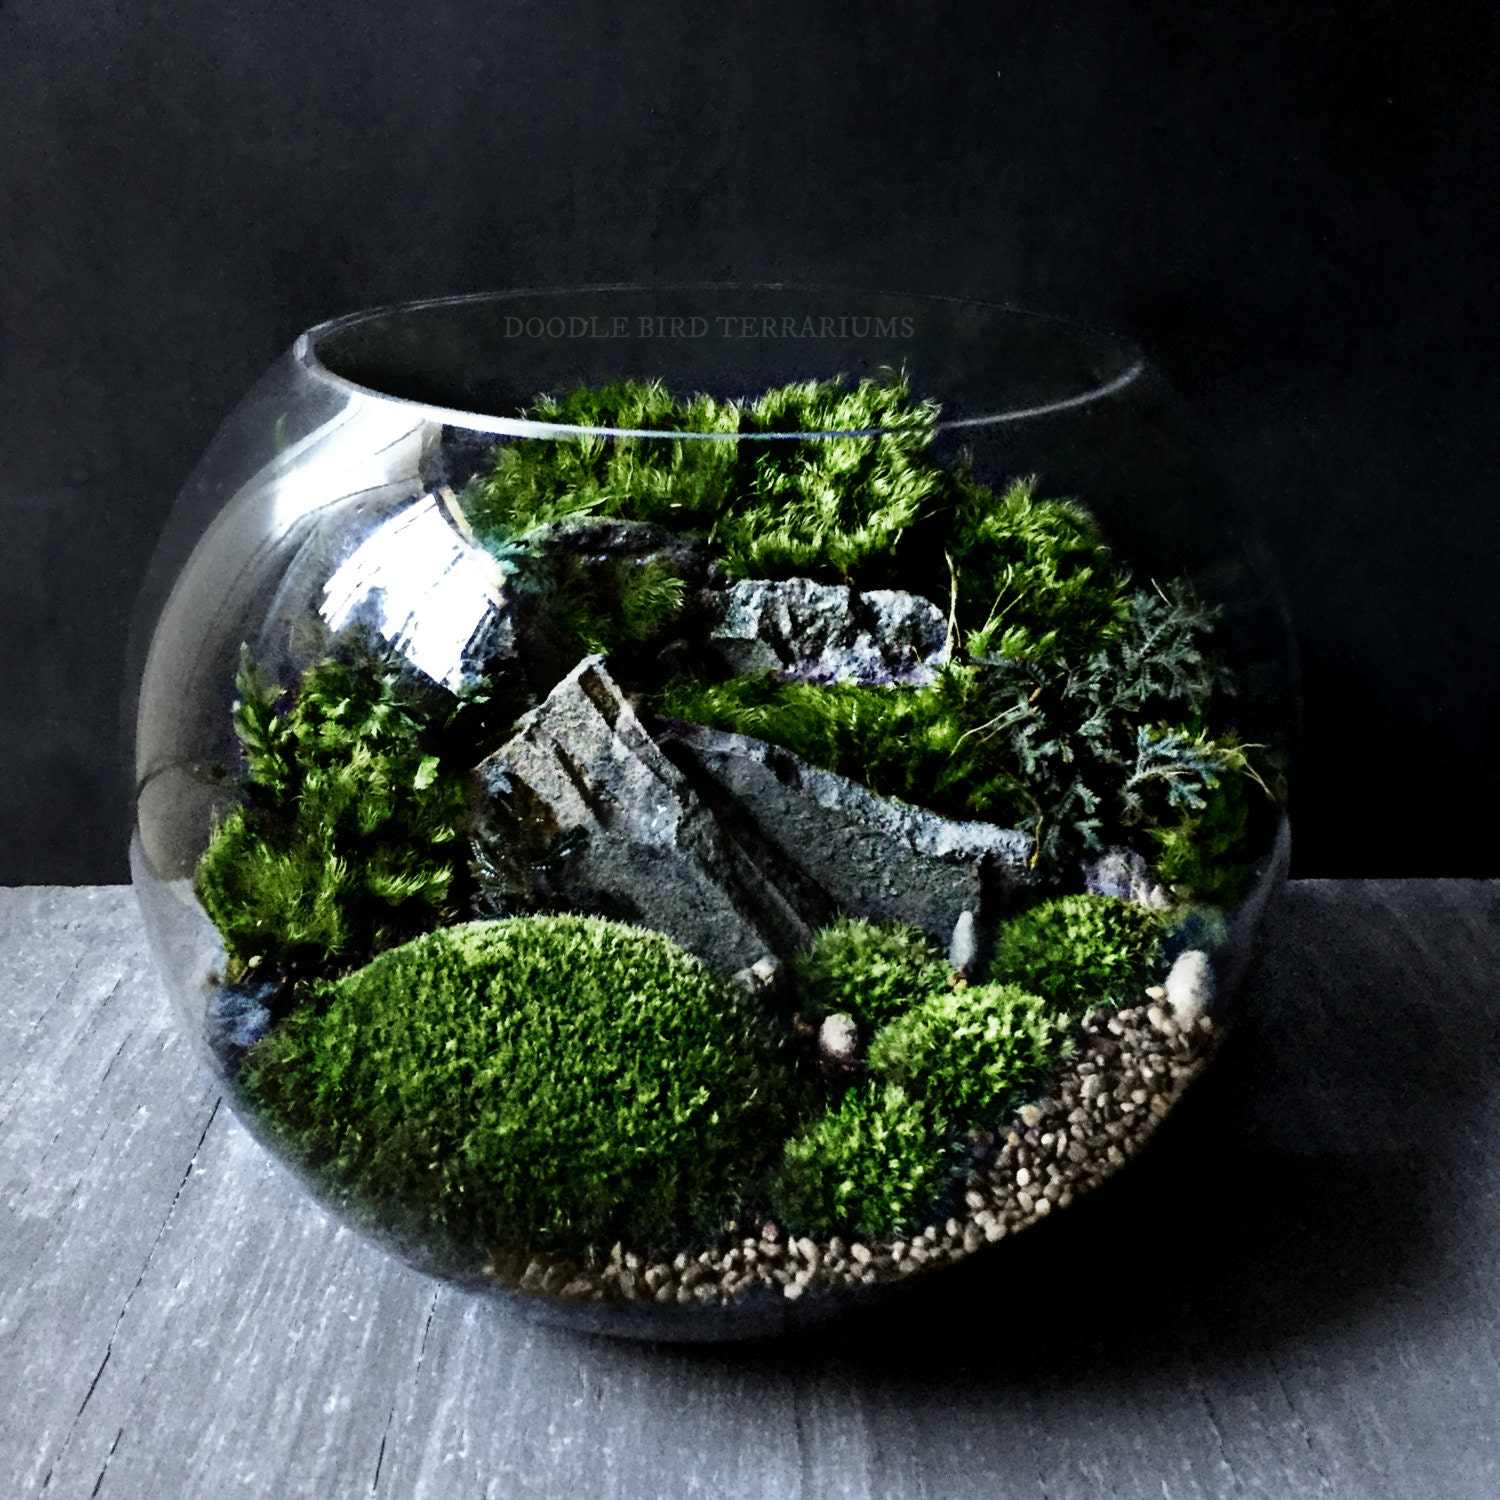 bio bowl terrarium with organic woodland plants alternative. Black Bedroom Furniture Sets. Home Design Ideas